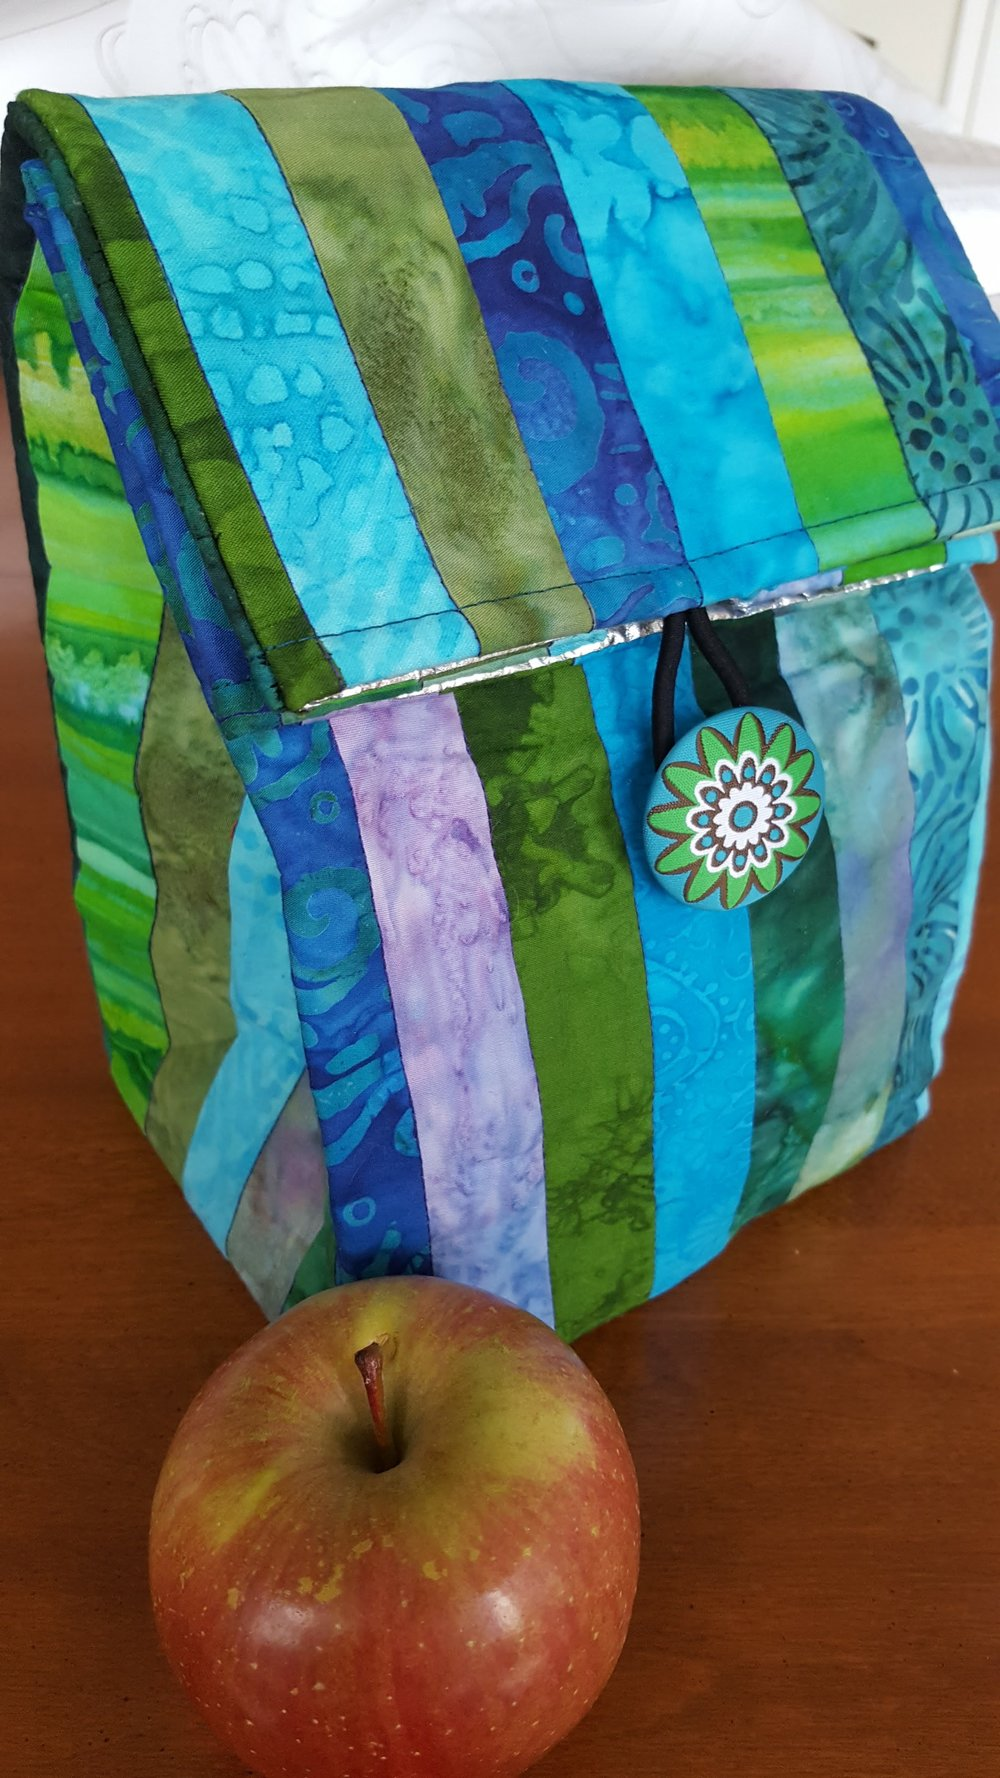 lUNCH IS IN THE BAG! mAKE YOUR FAVORITE PERSON A STYLISH, INSULATED LUNCH BAG FOR SCHOOL